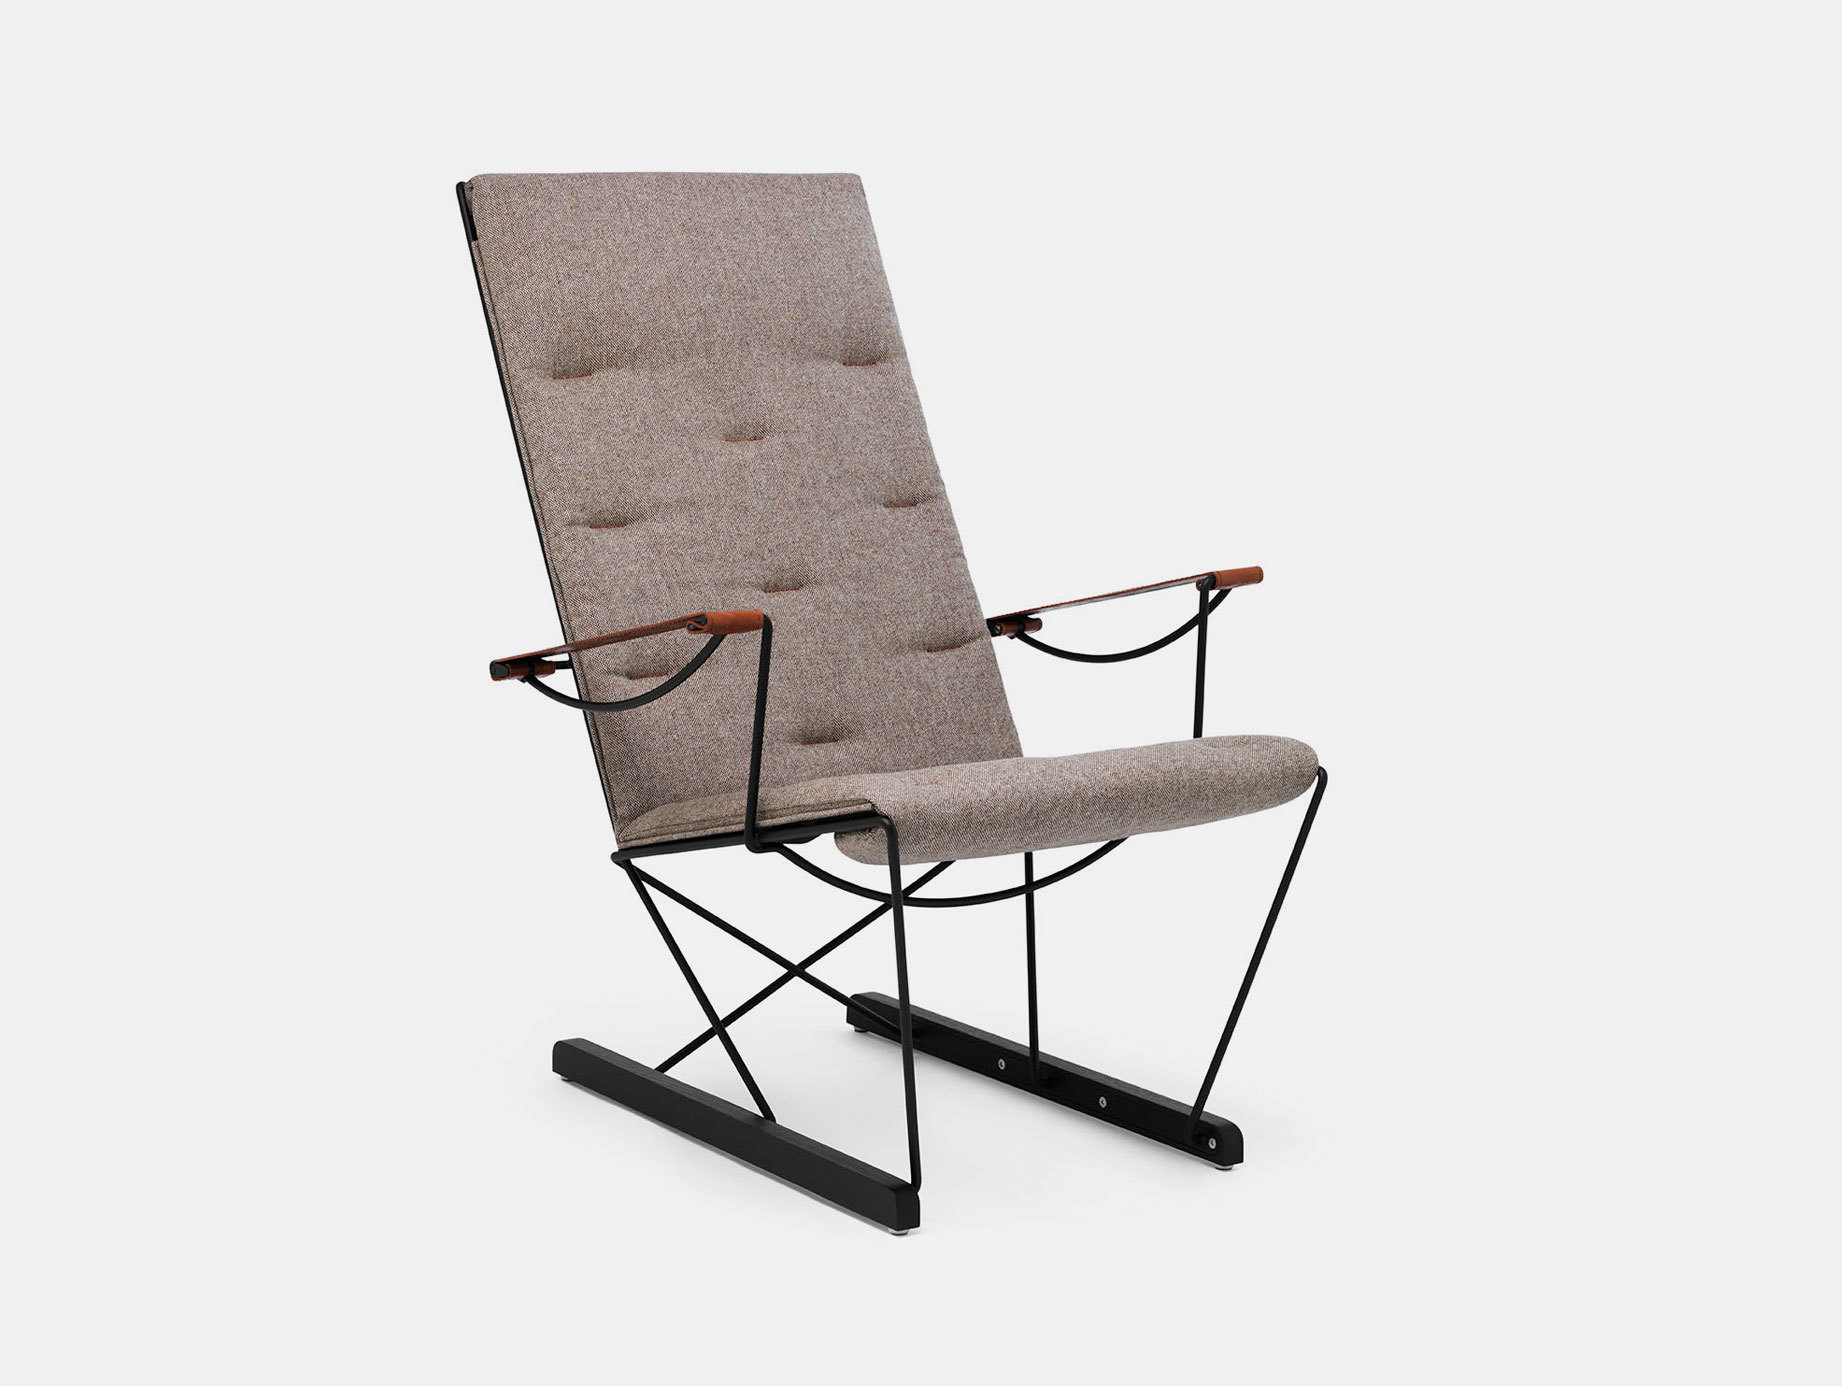 Spark Lounge Chair image 2